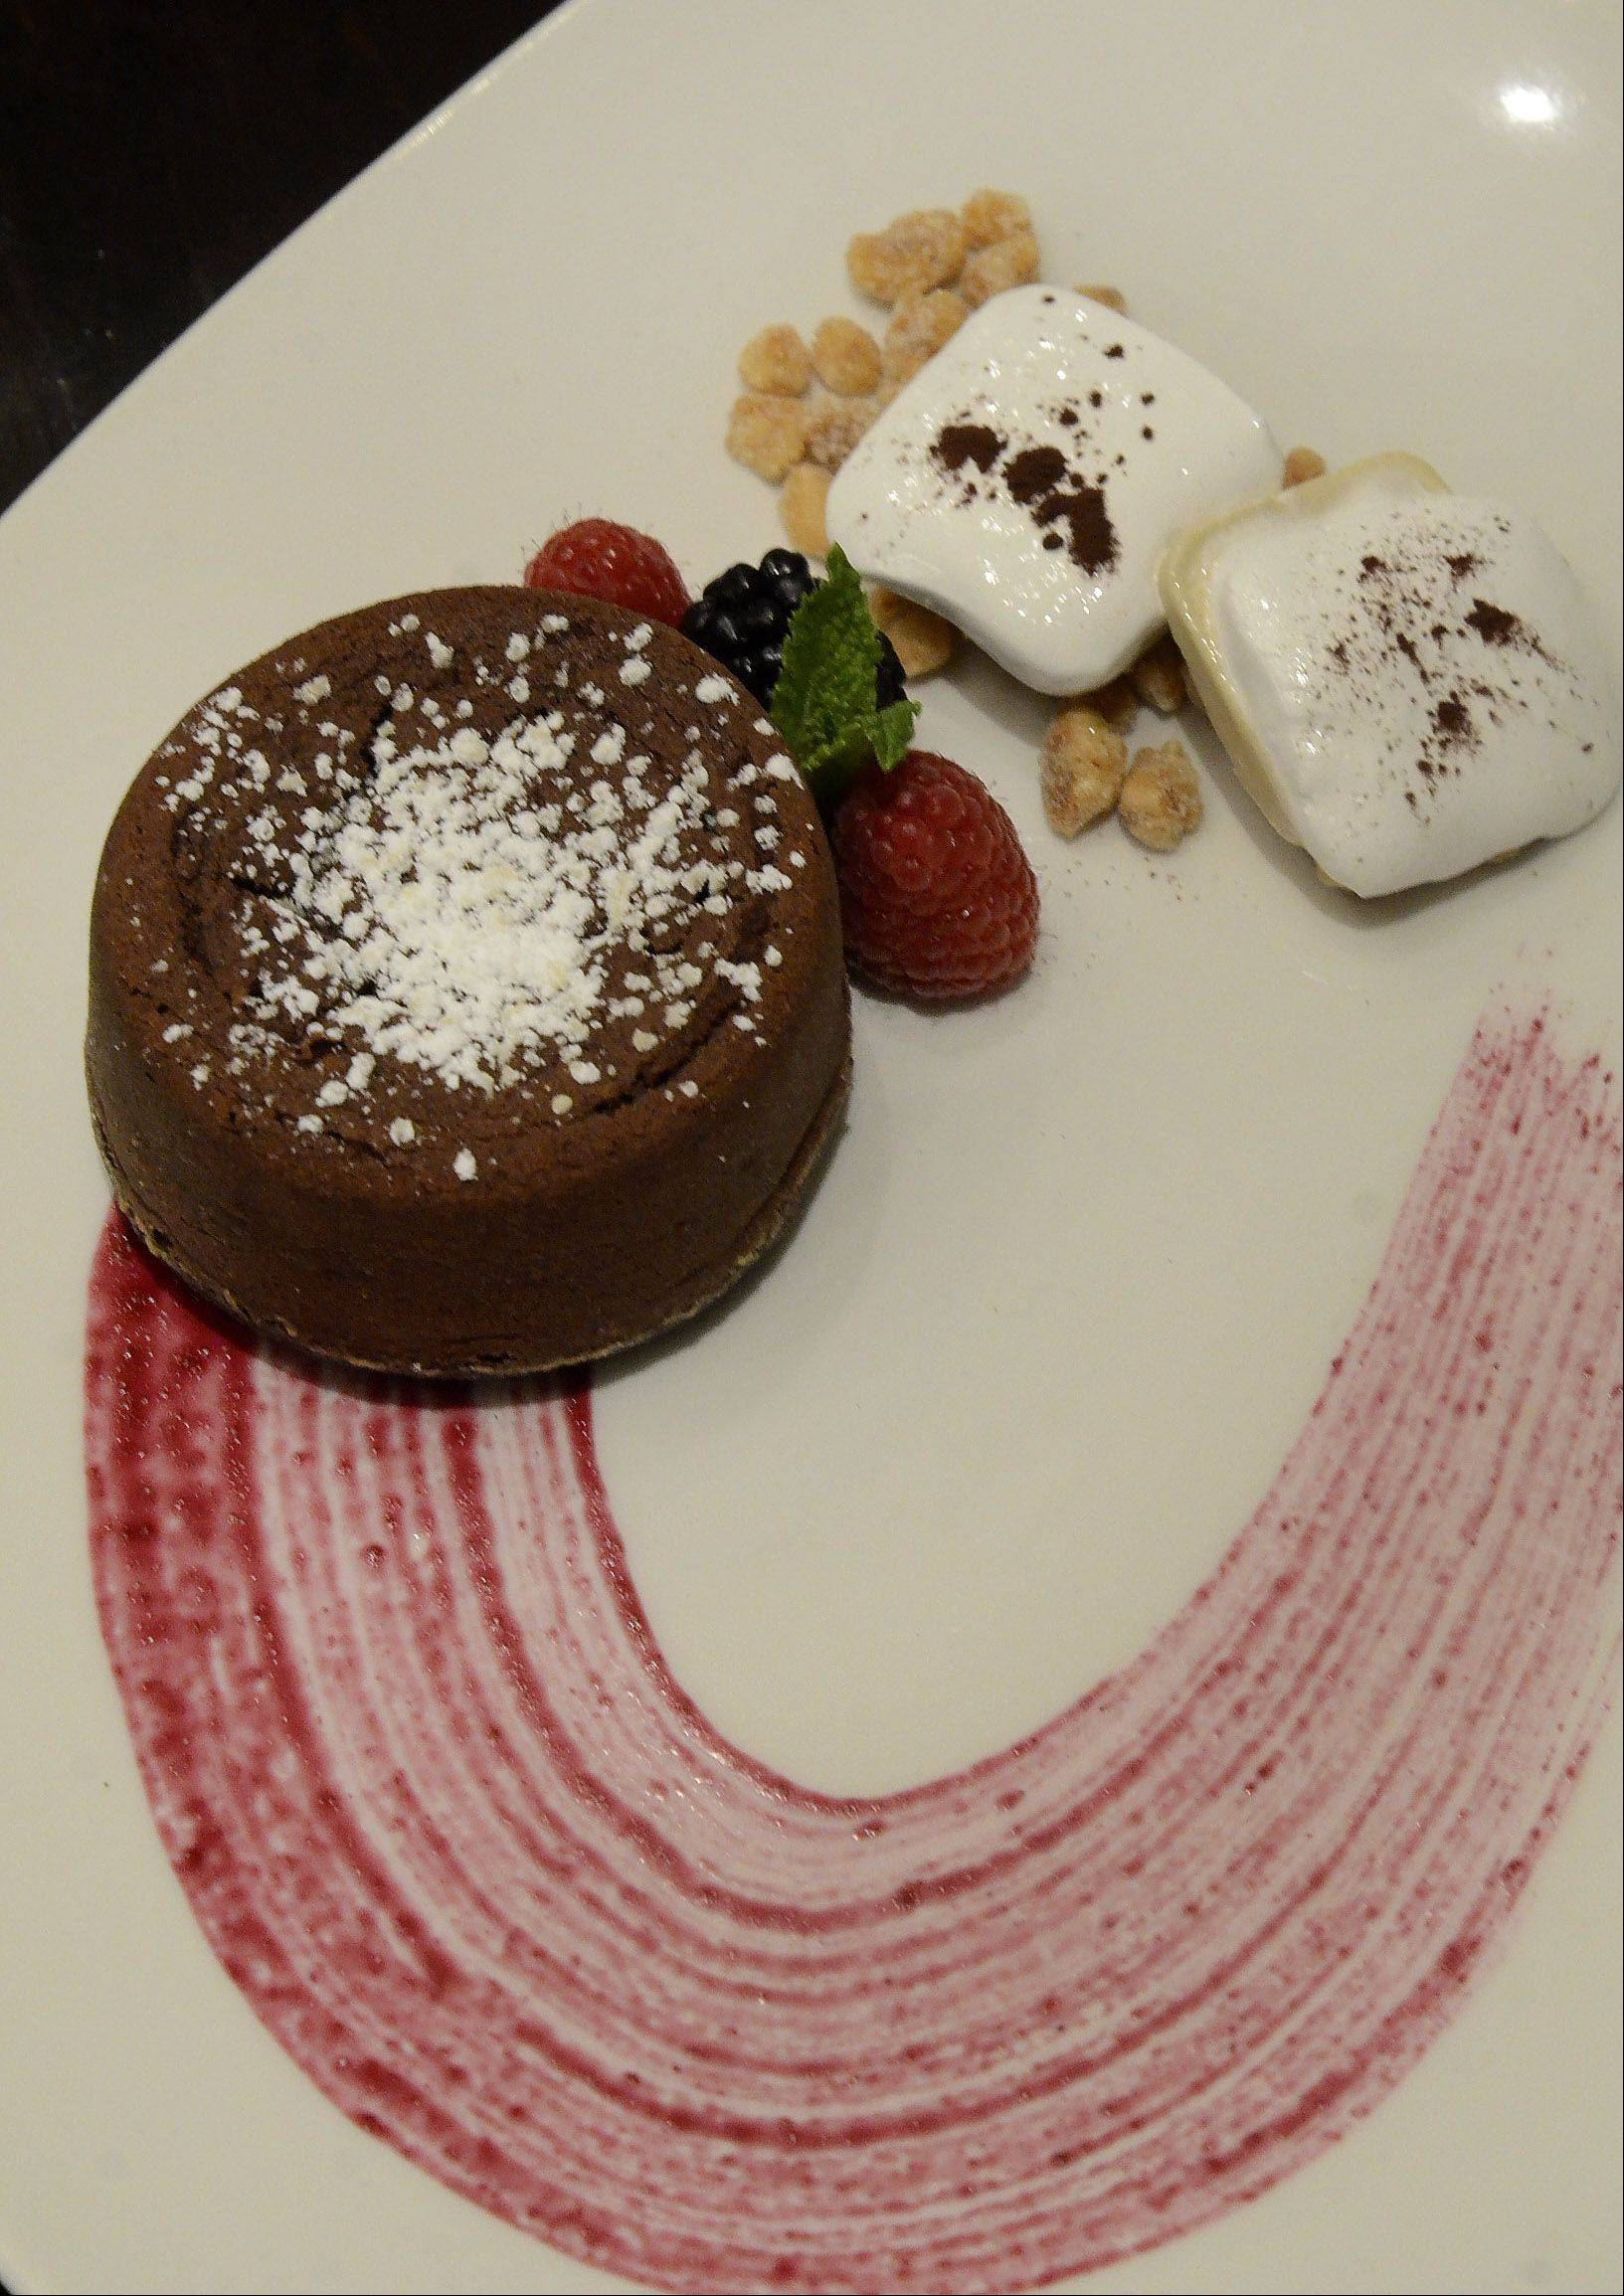 Fresco 21's molten chocolate cake is among the dessert options during Chicago Restaurant Week.